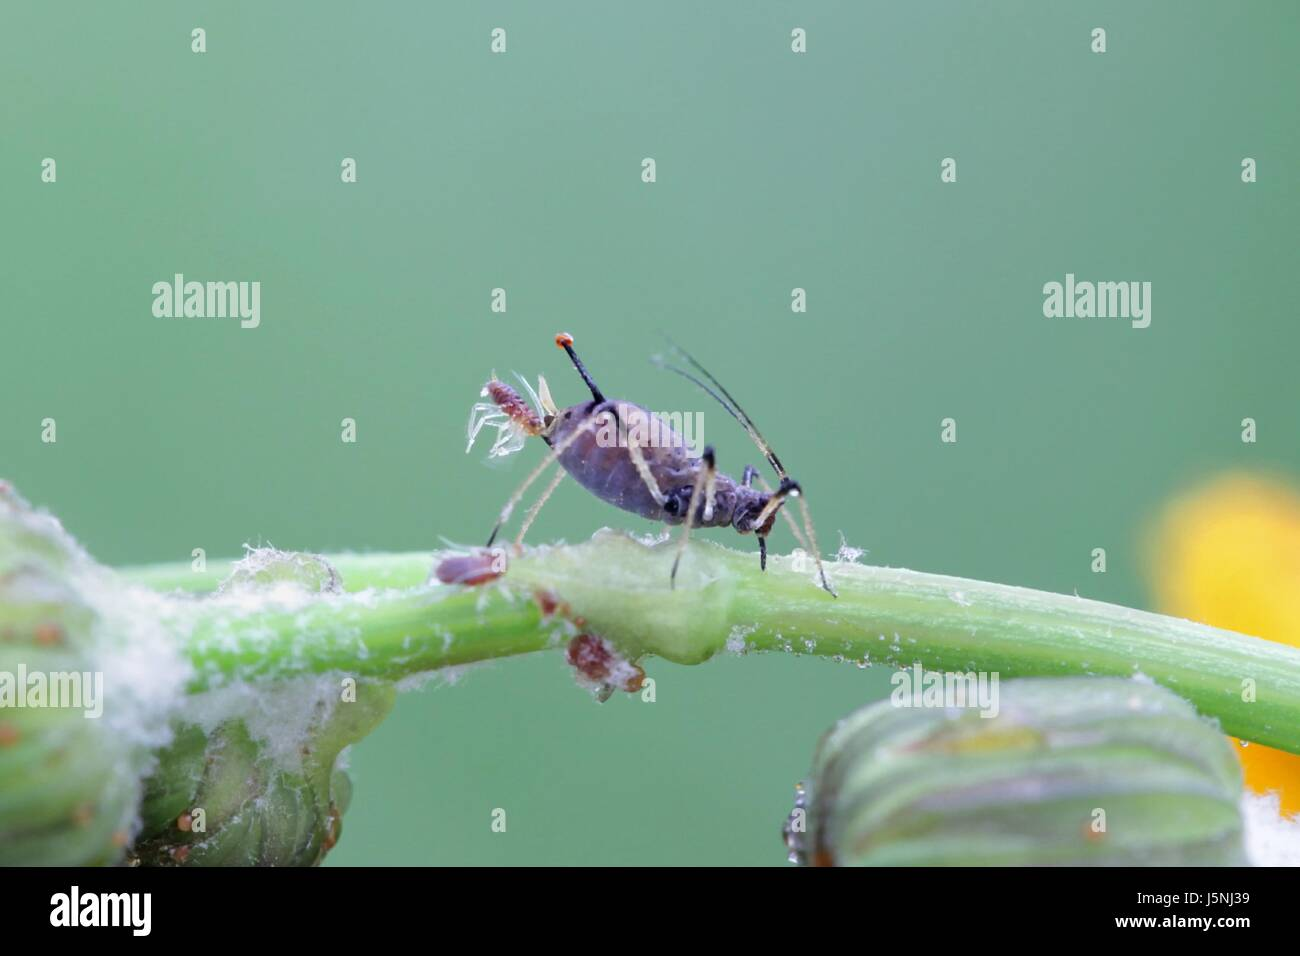 Aphid giving birth to a clone of itself - Stock Image